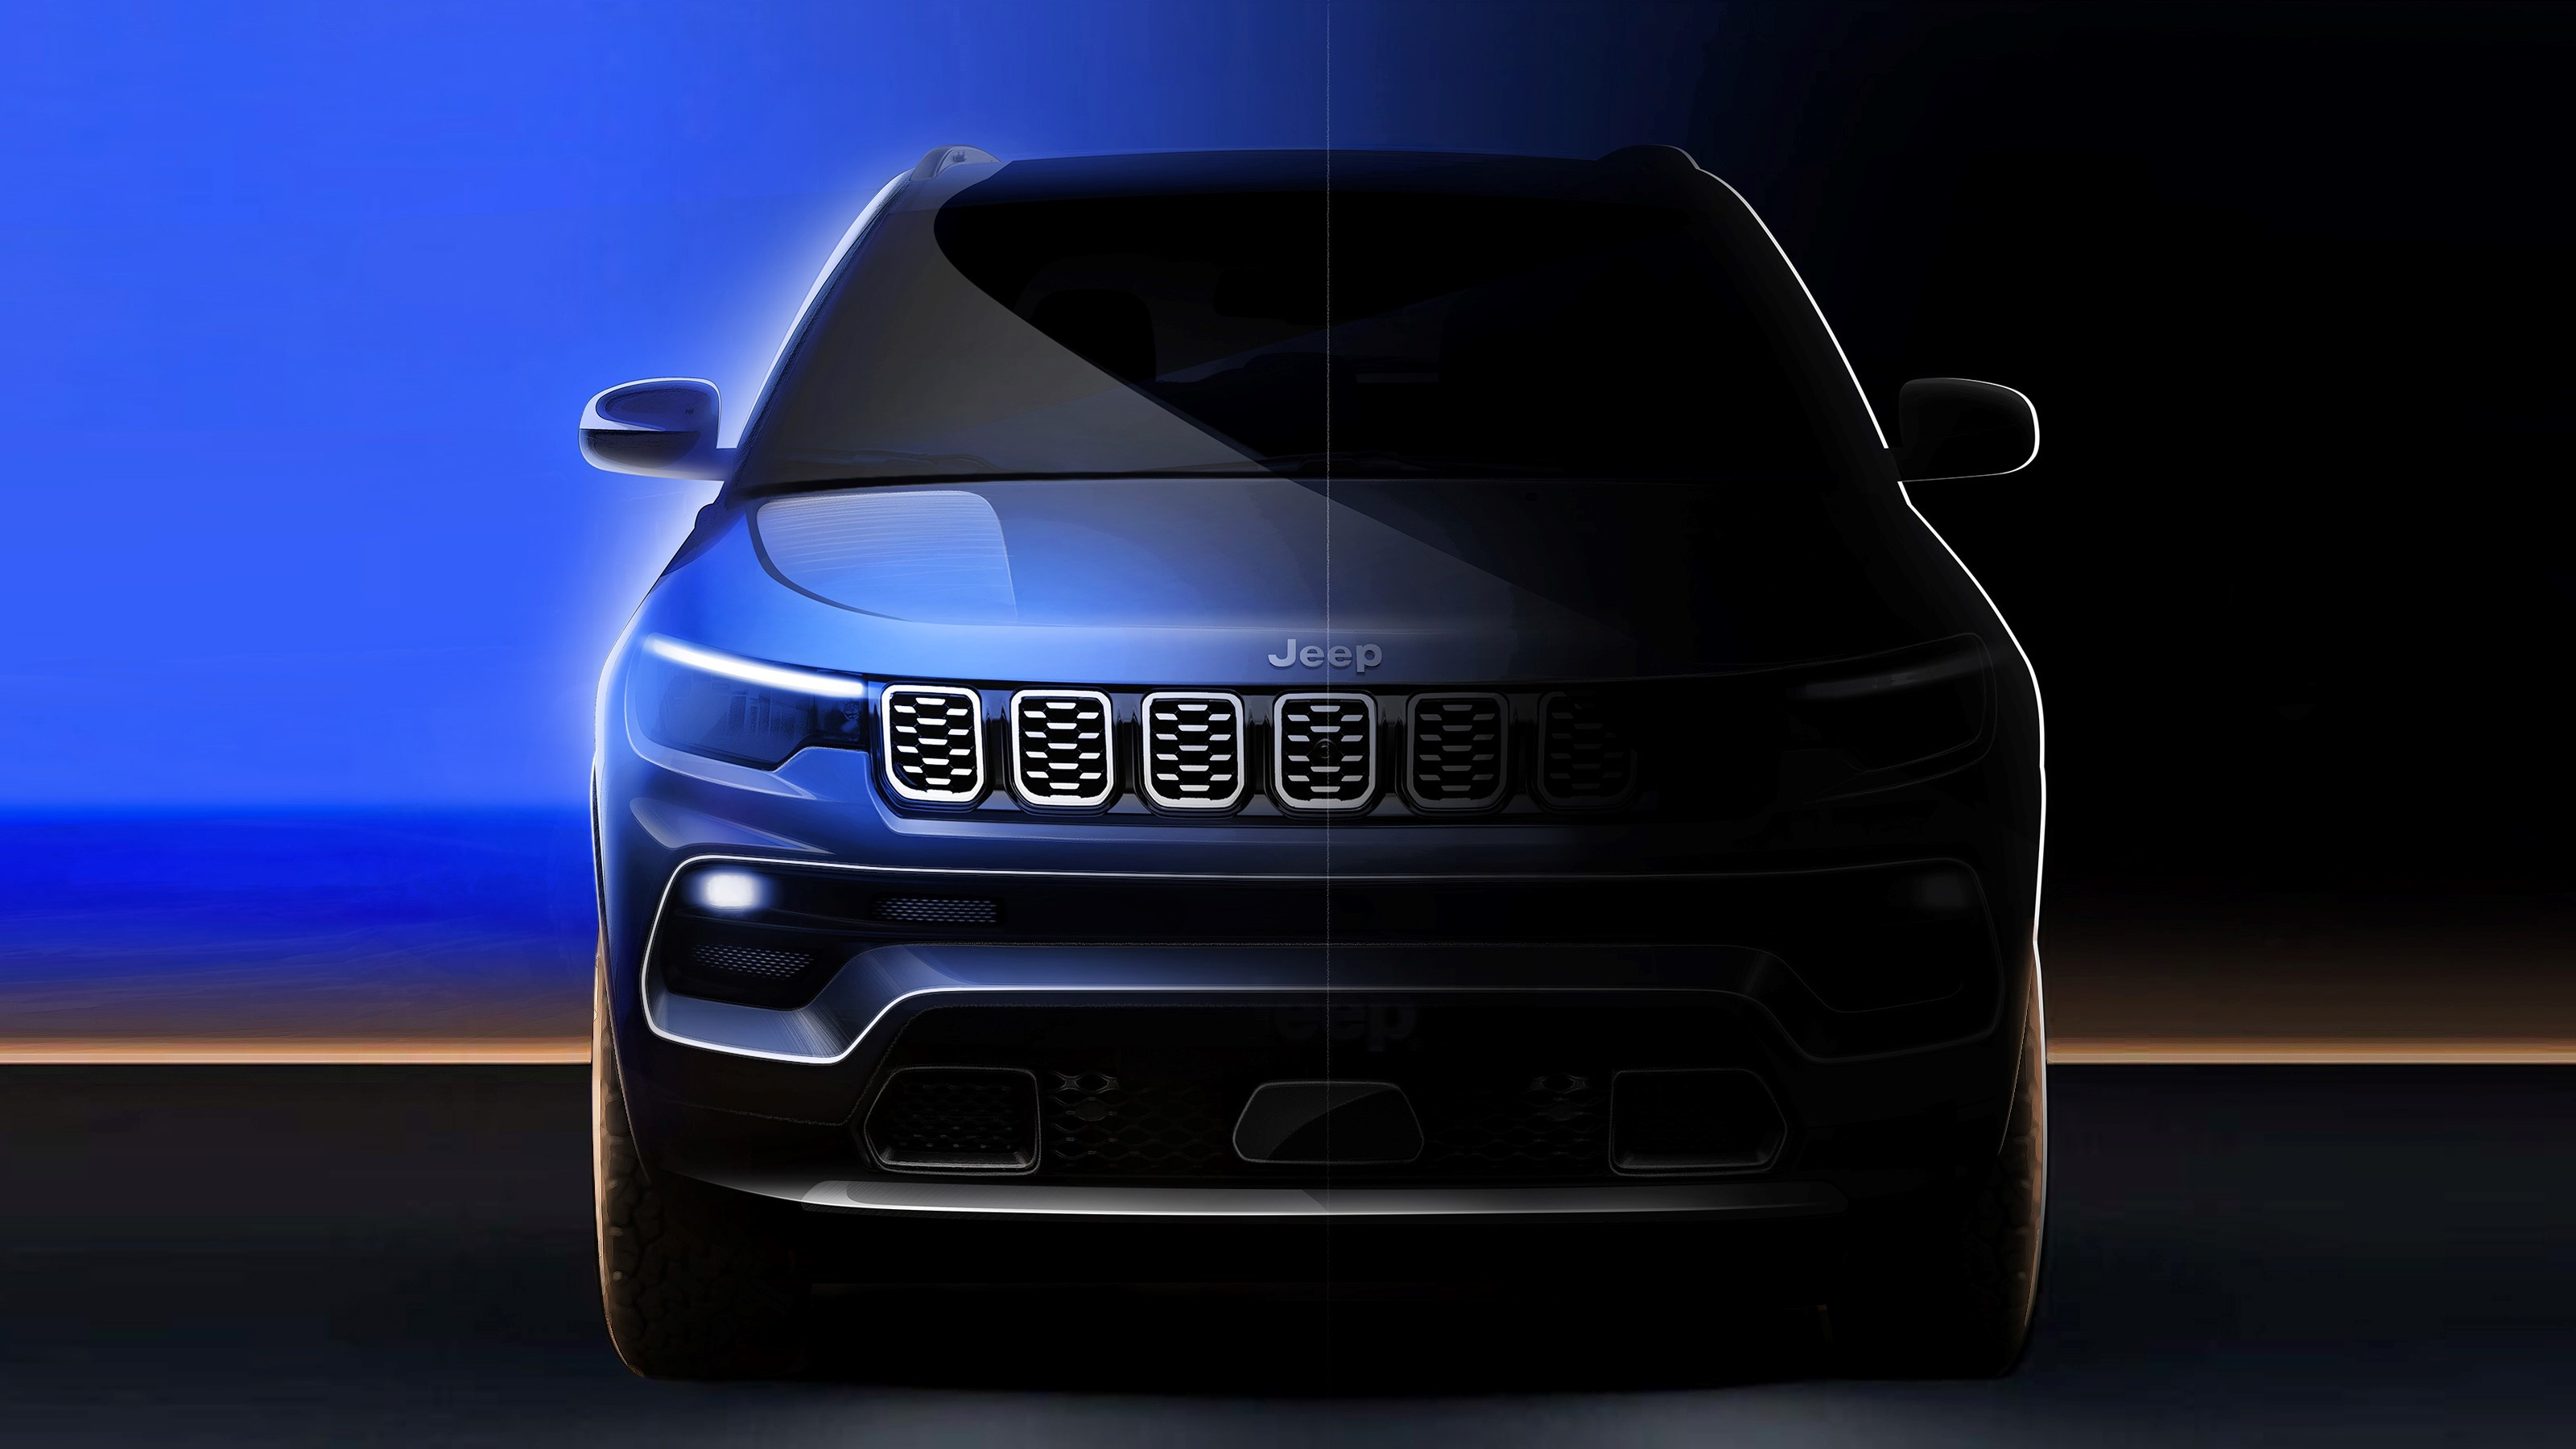 Jeep-Compass-Facelift-2021-teasers-1